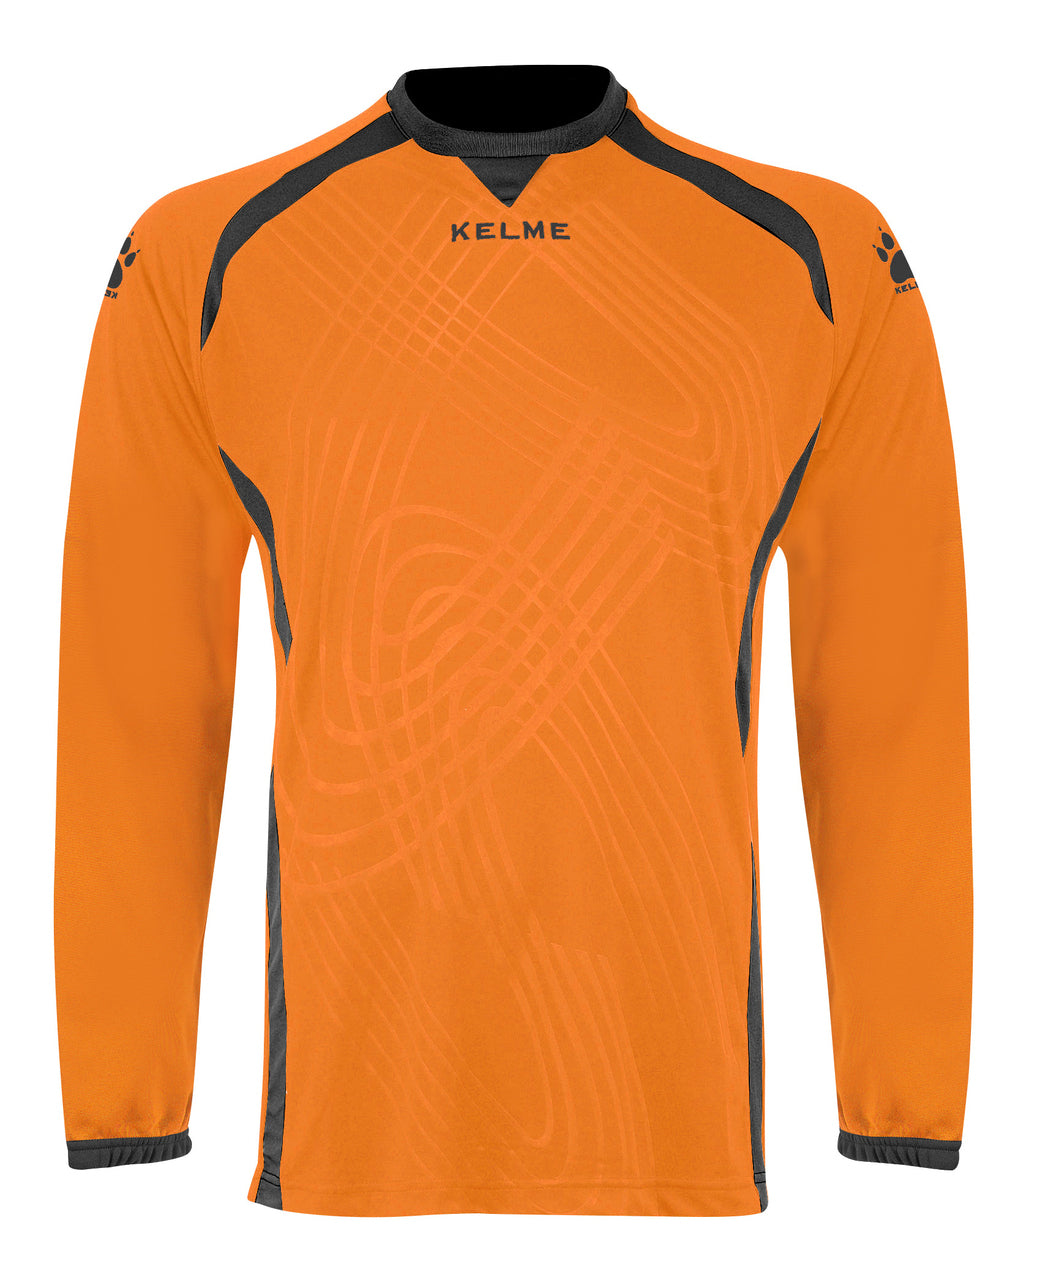 Kelme Attack Goalkeeper Jersey Youth - Orange